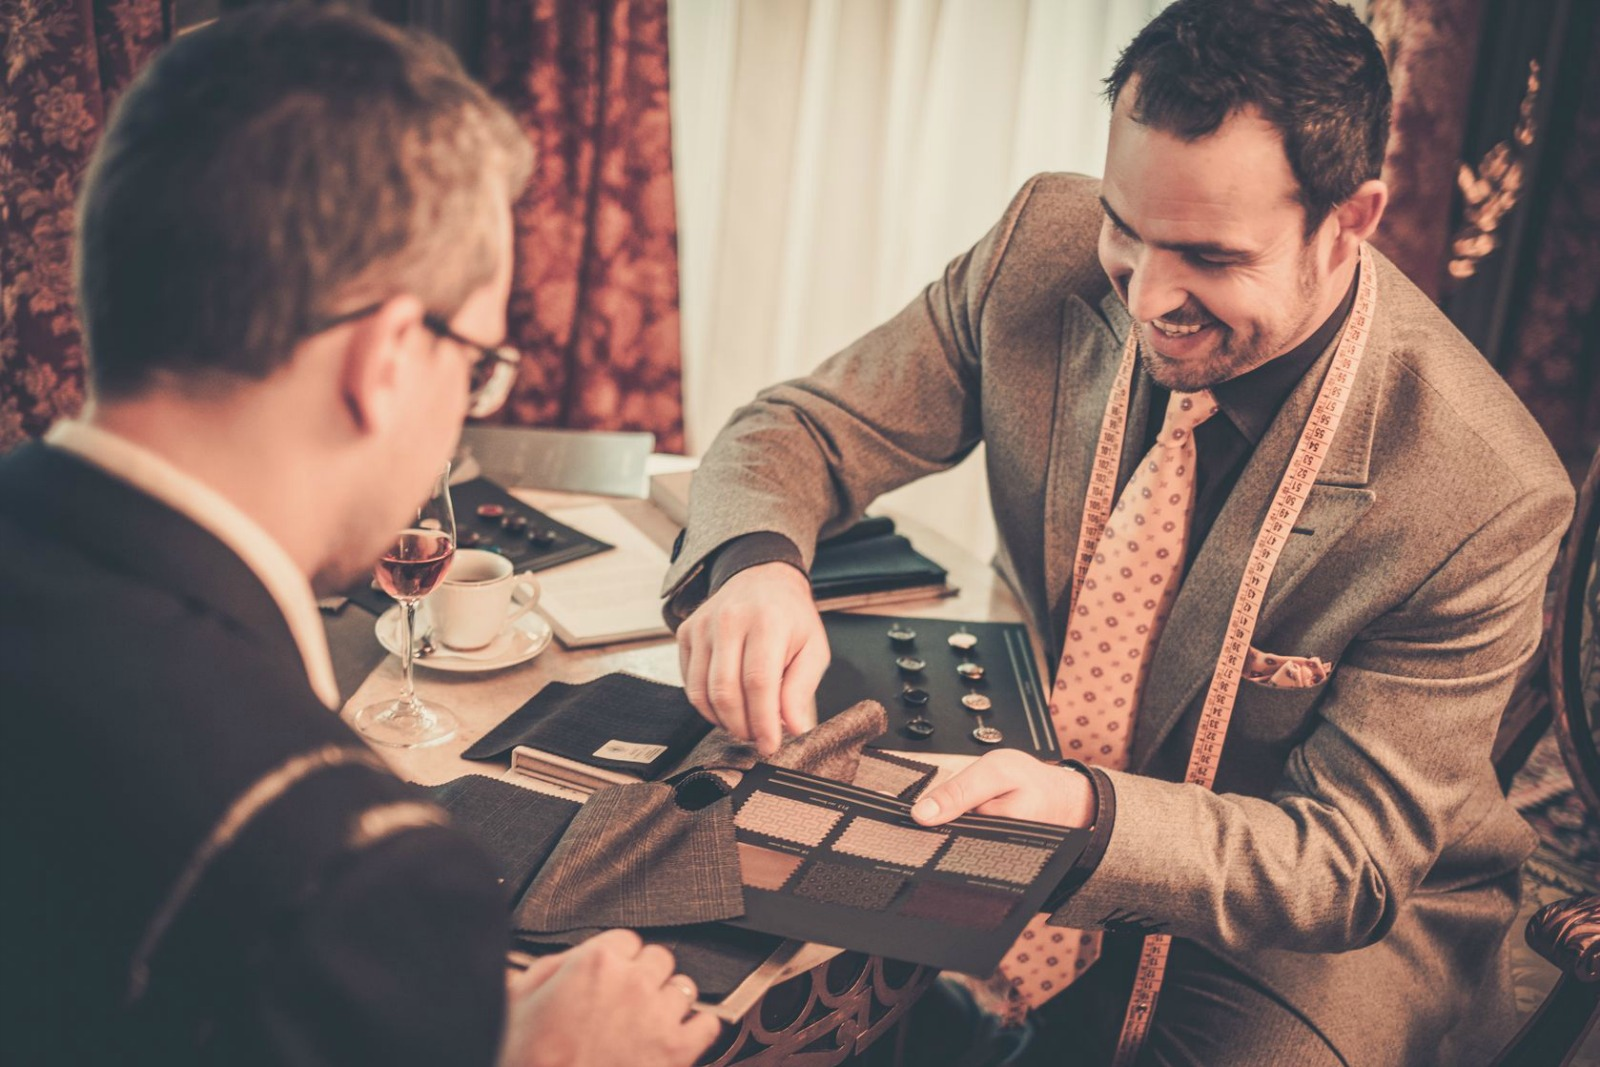 Bespoke Suits vs. Off the Rack: Key Differences